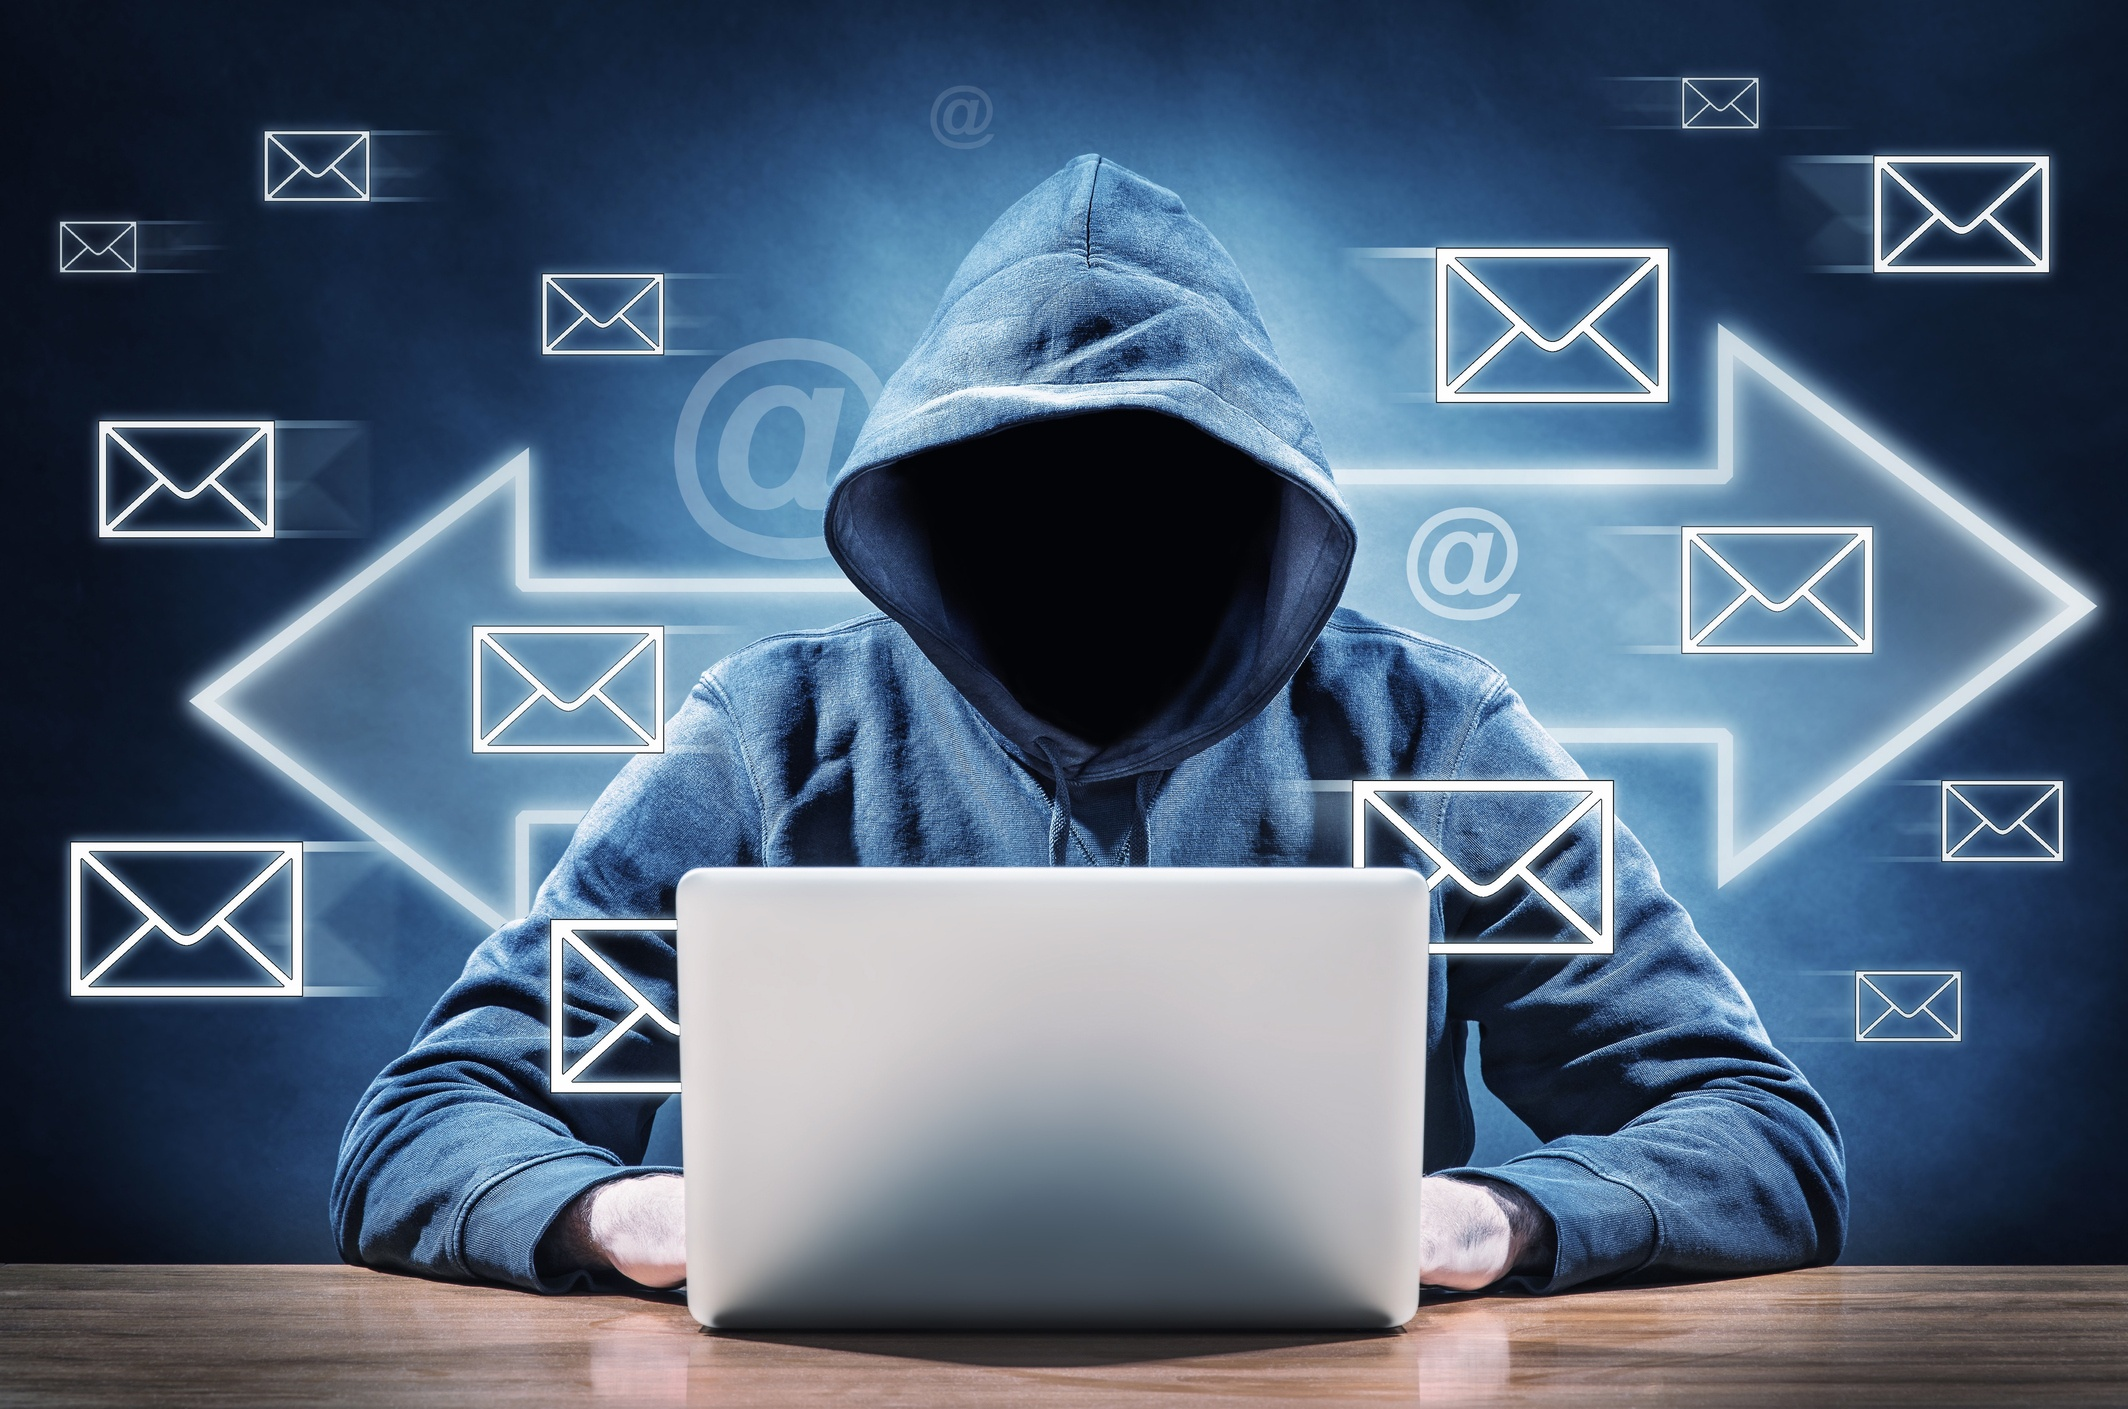 email-fraud-attack-iStock-532171892